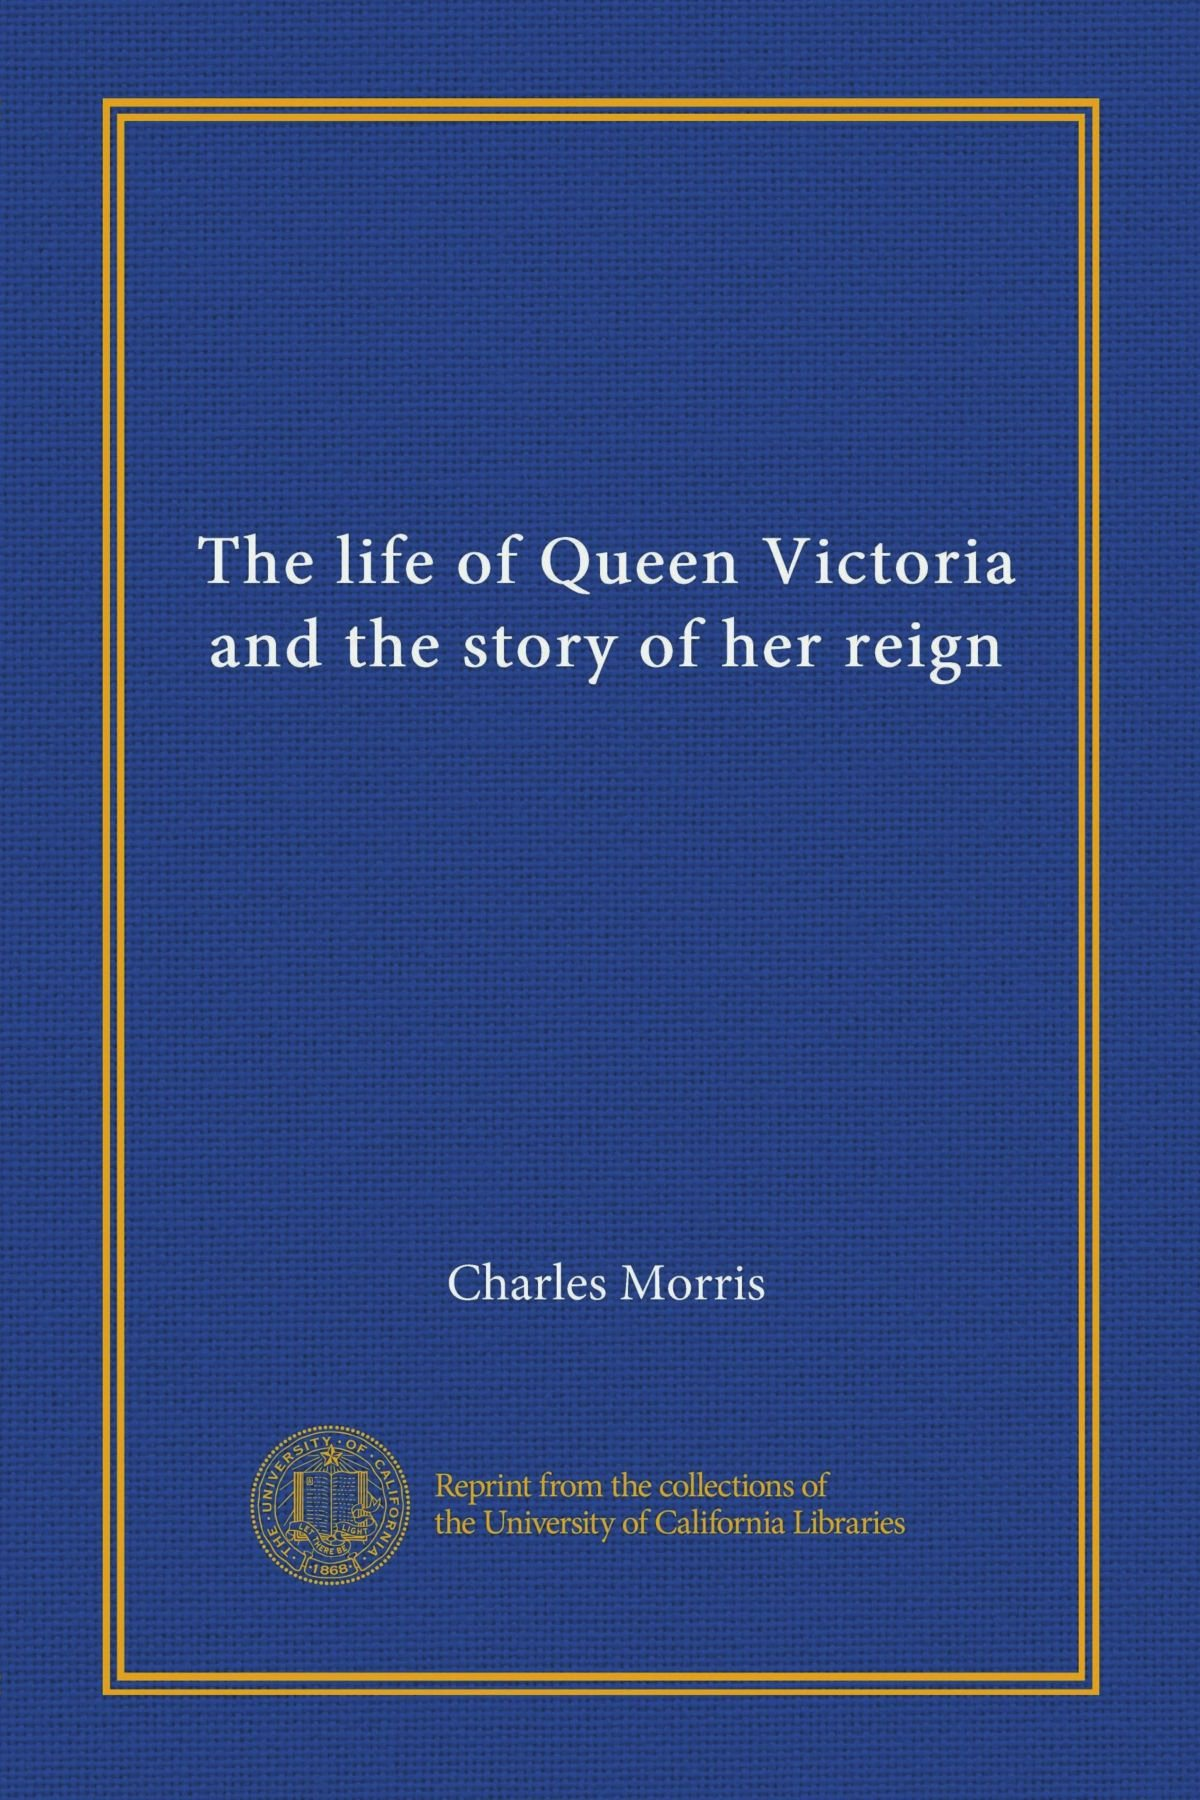 Download The life of Queen Victoria and the story of her reign ebook